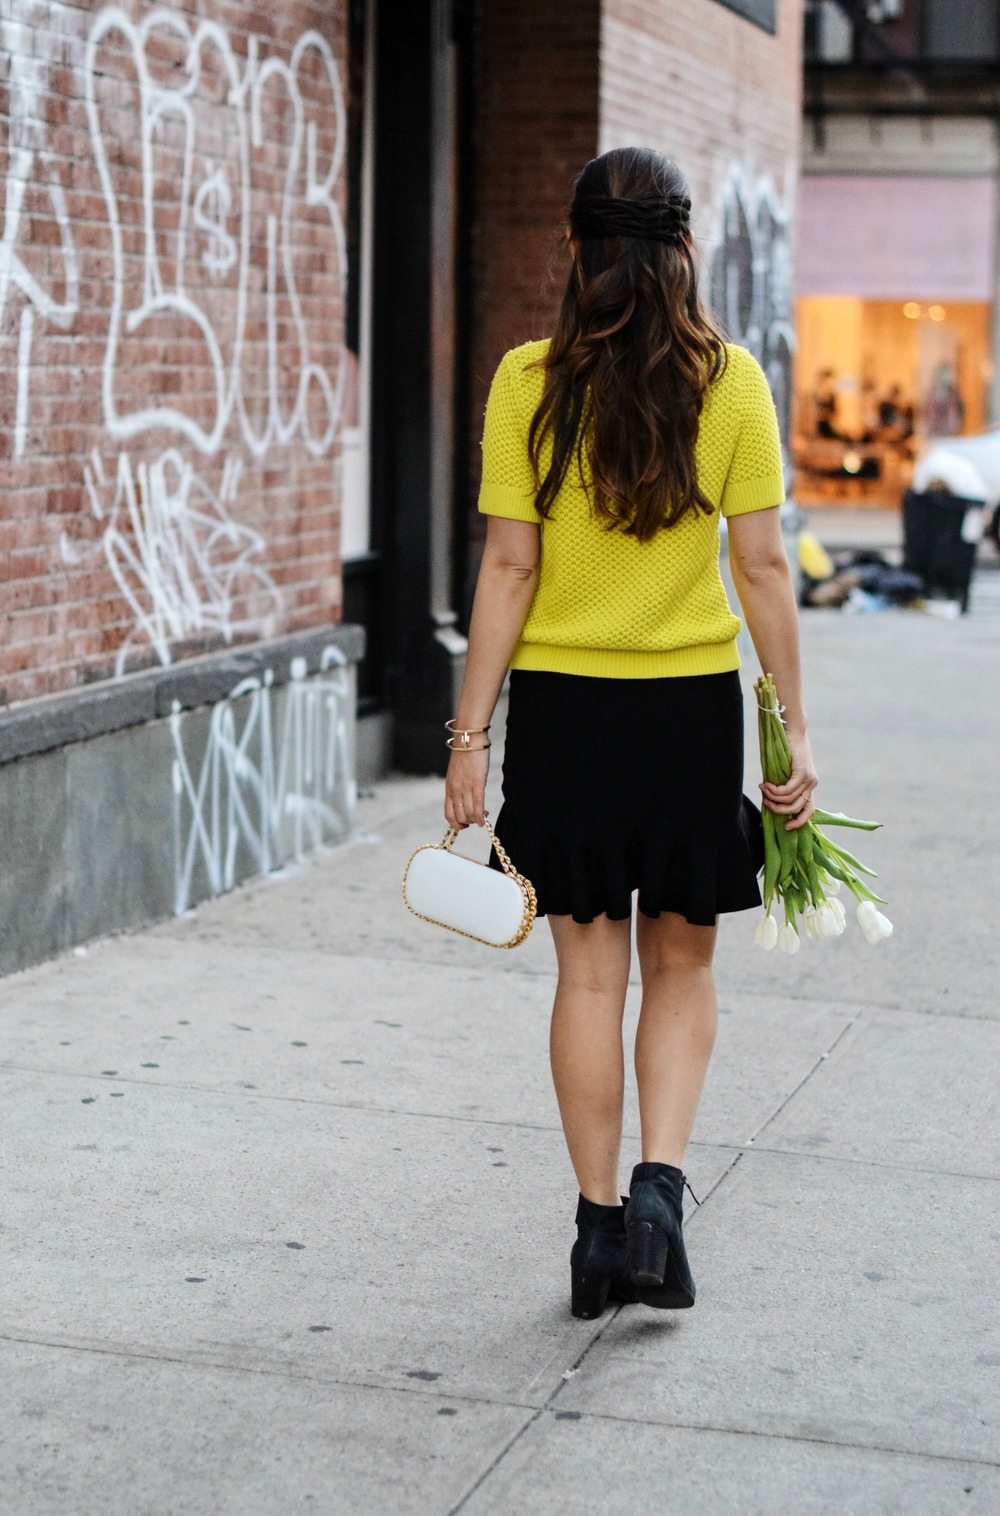 White Prince Minaudiere Erin Dana Louboutins & Love Fashion Blog Esther Santer NYC Street Style Blogger Bag Giveaway Gold Jewelry Lydell Bracelet Collar Necklace Black Booties Flared Ruffle Skirt Photoshoot Model Outfit Club Monaco Neon Yellow Sweater.jpg